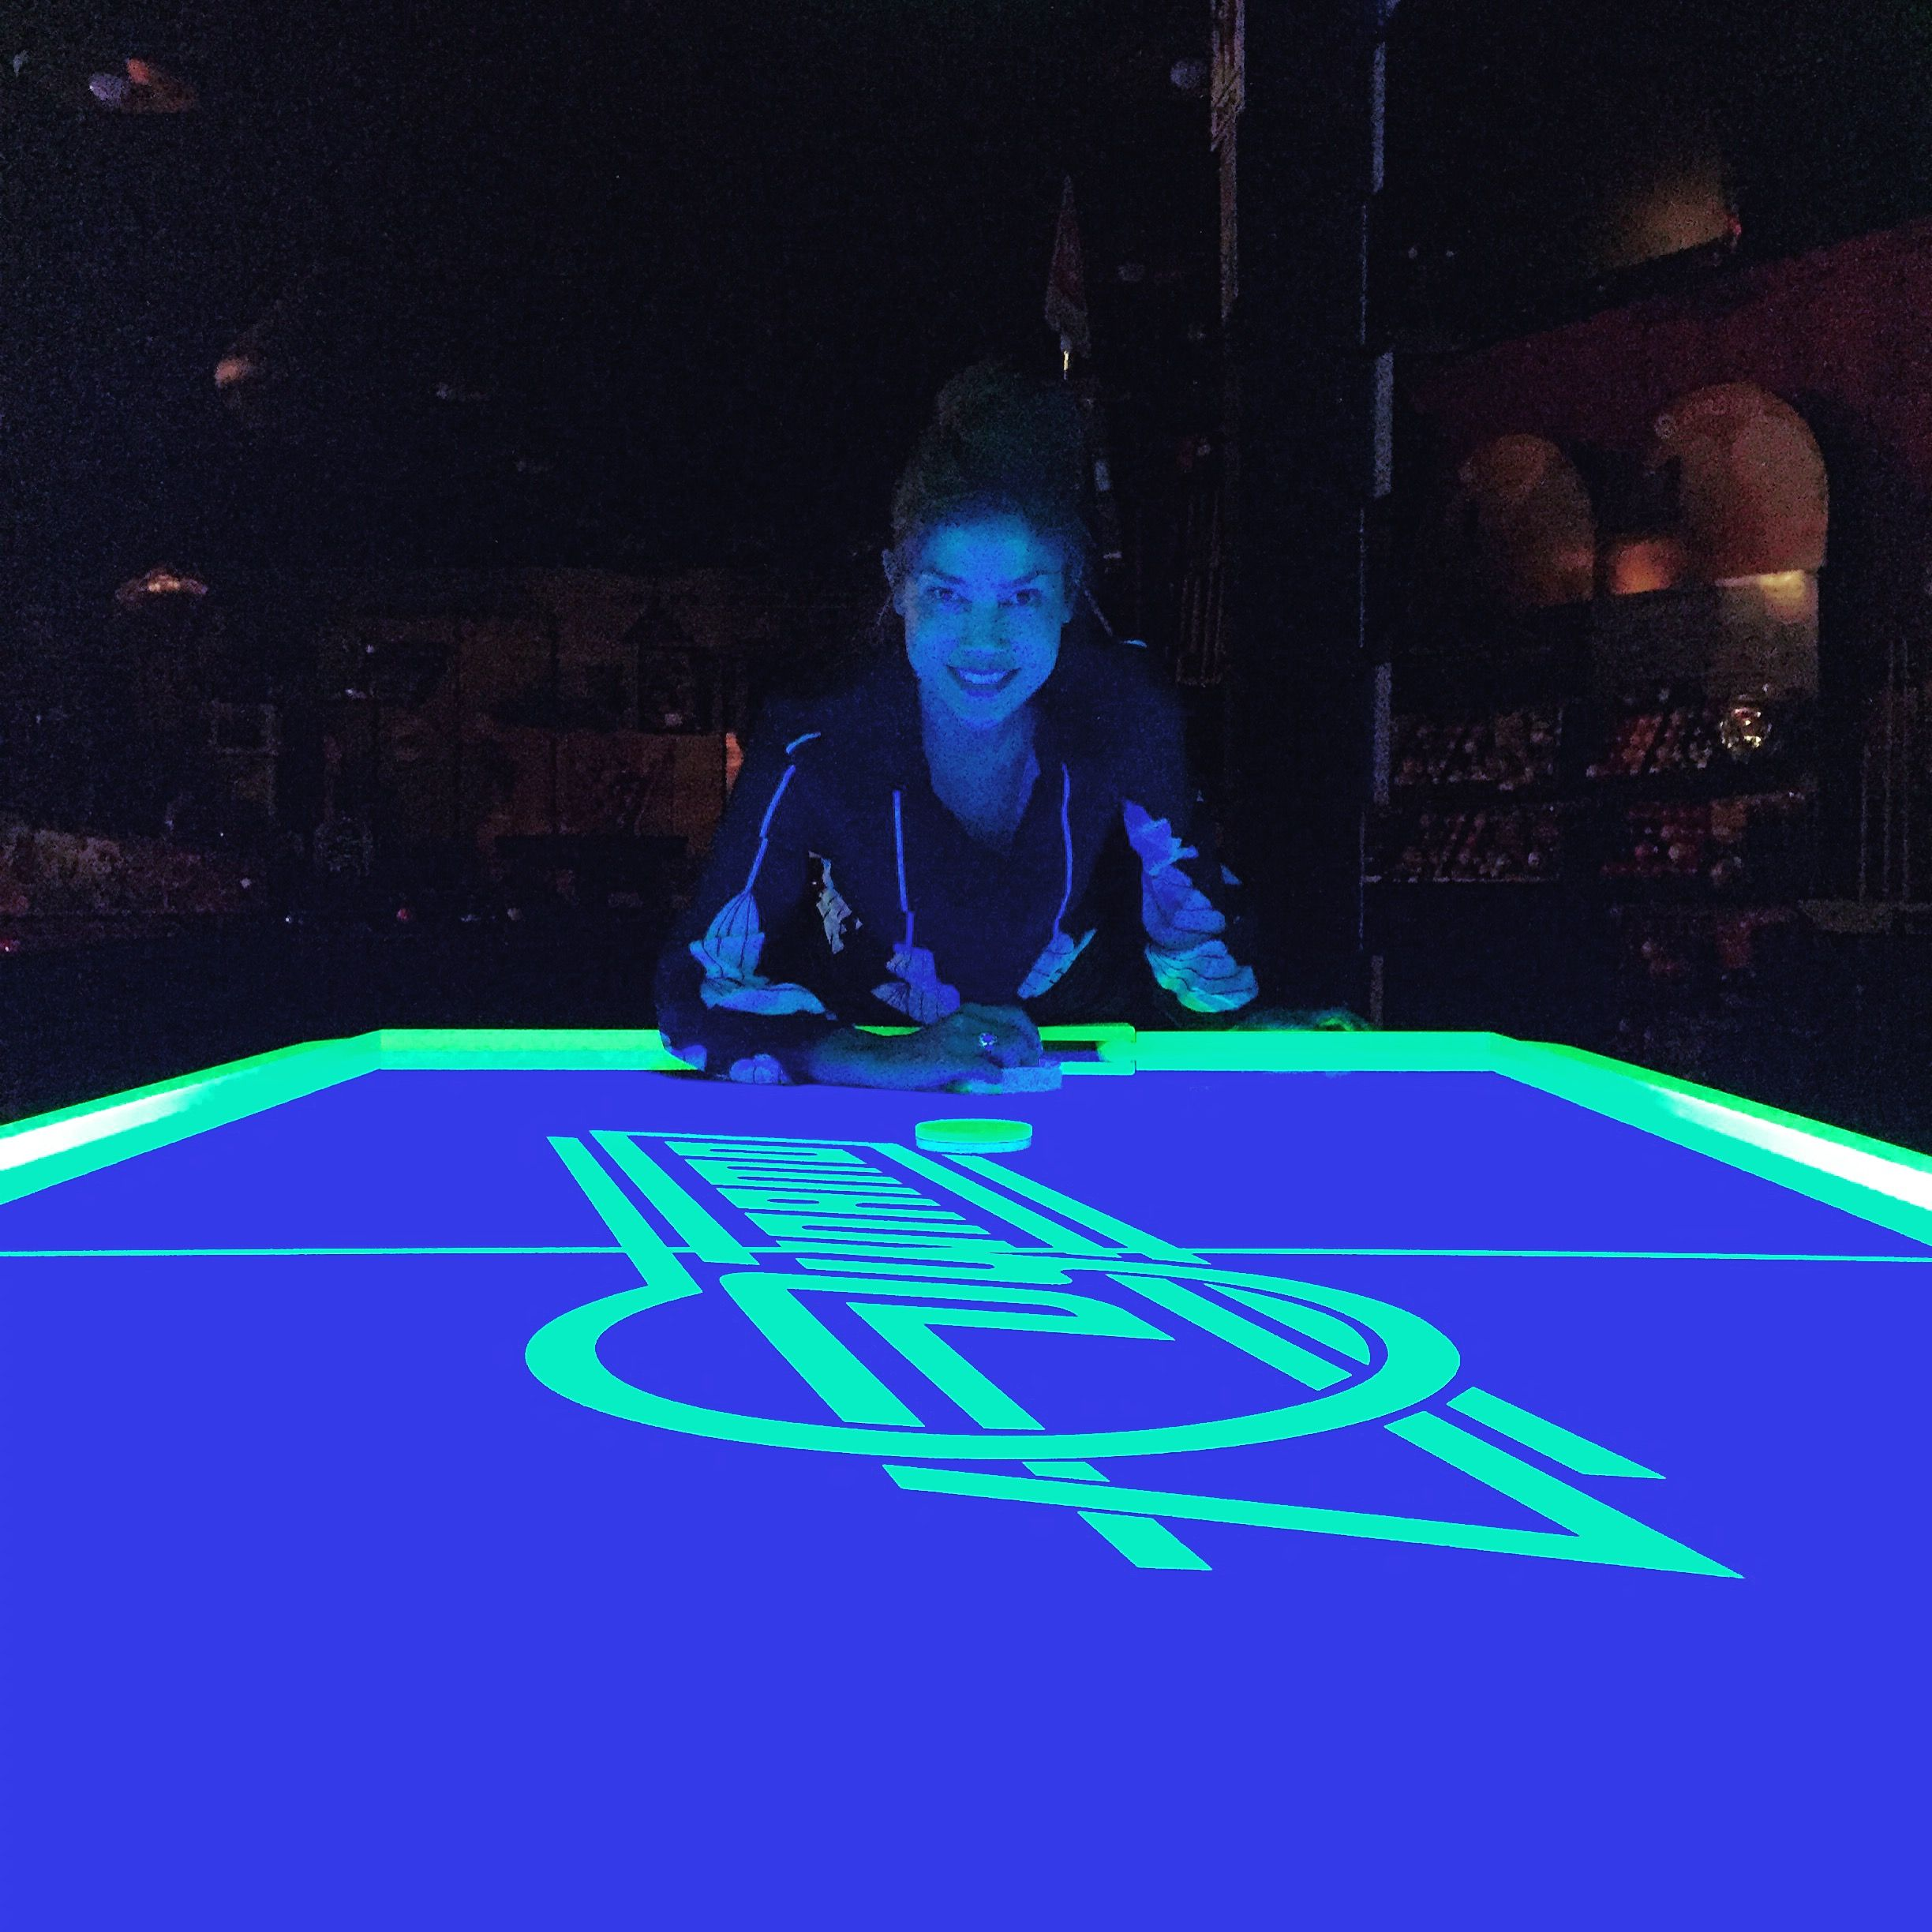 Check out our amazing dynamoairhockey gametables with